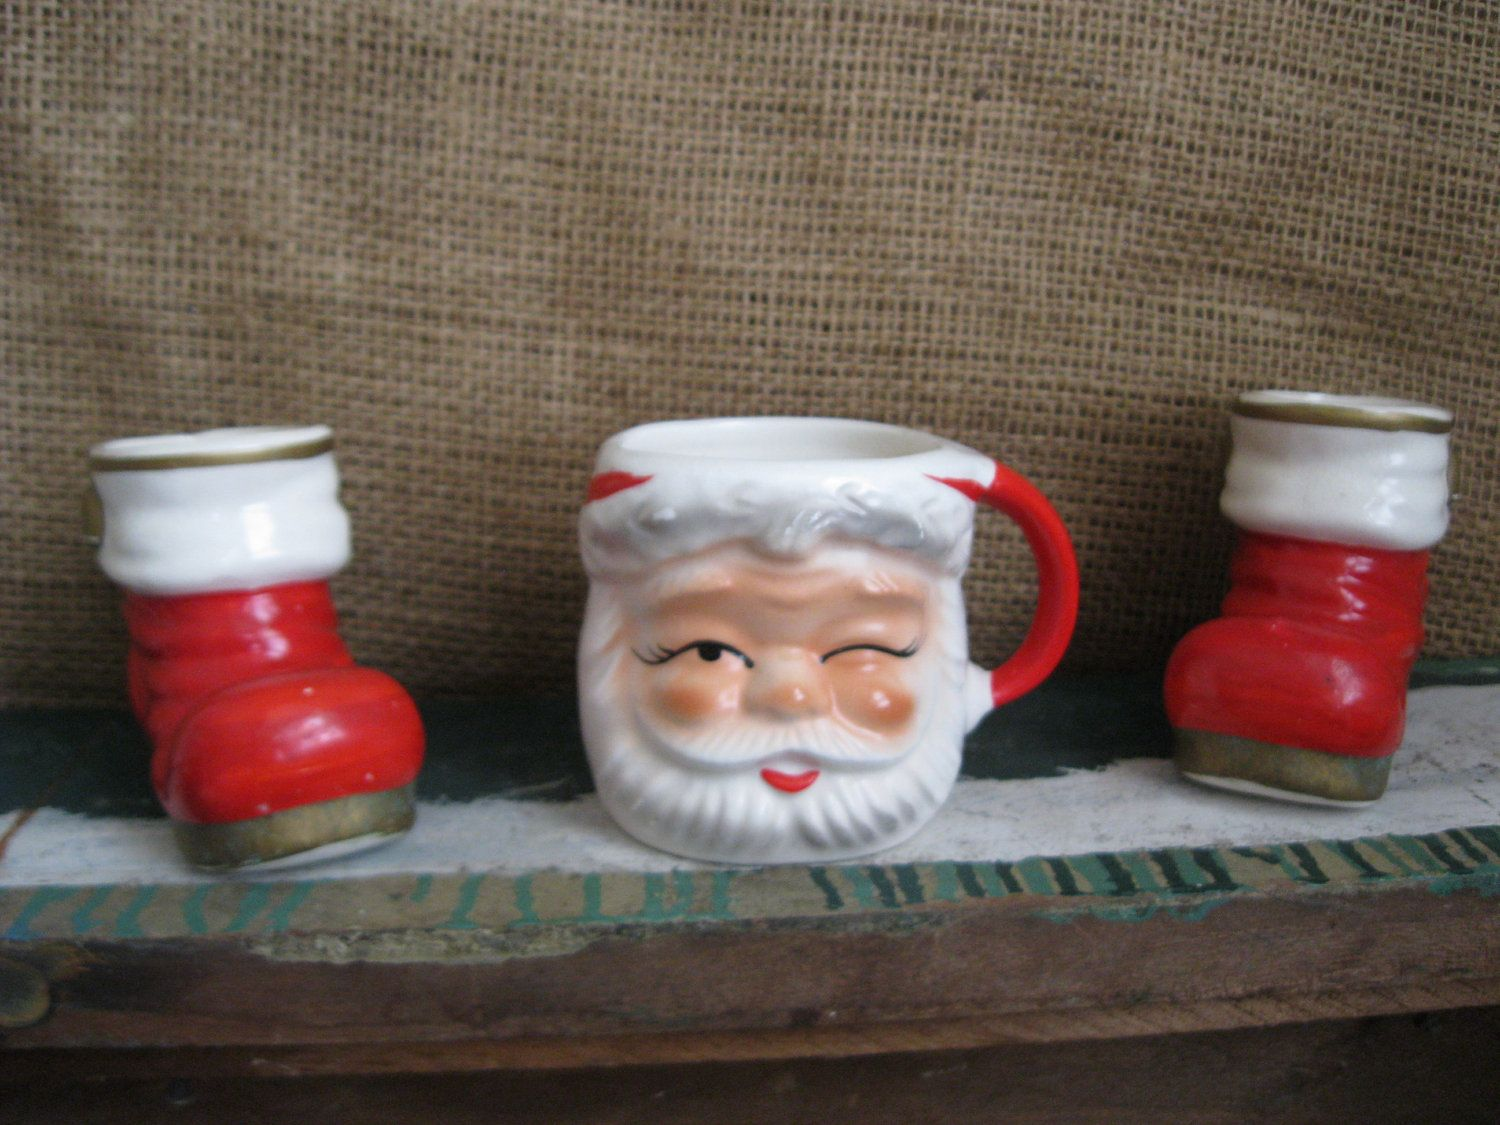 Antique - Ceramic Santa Mug and Boots - Sweet Holiday Decor. $8.00, via Etsy.